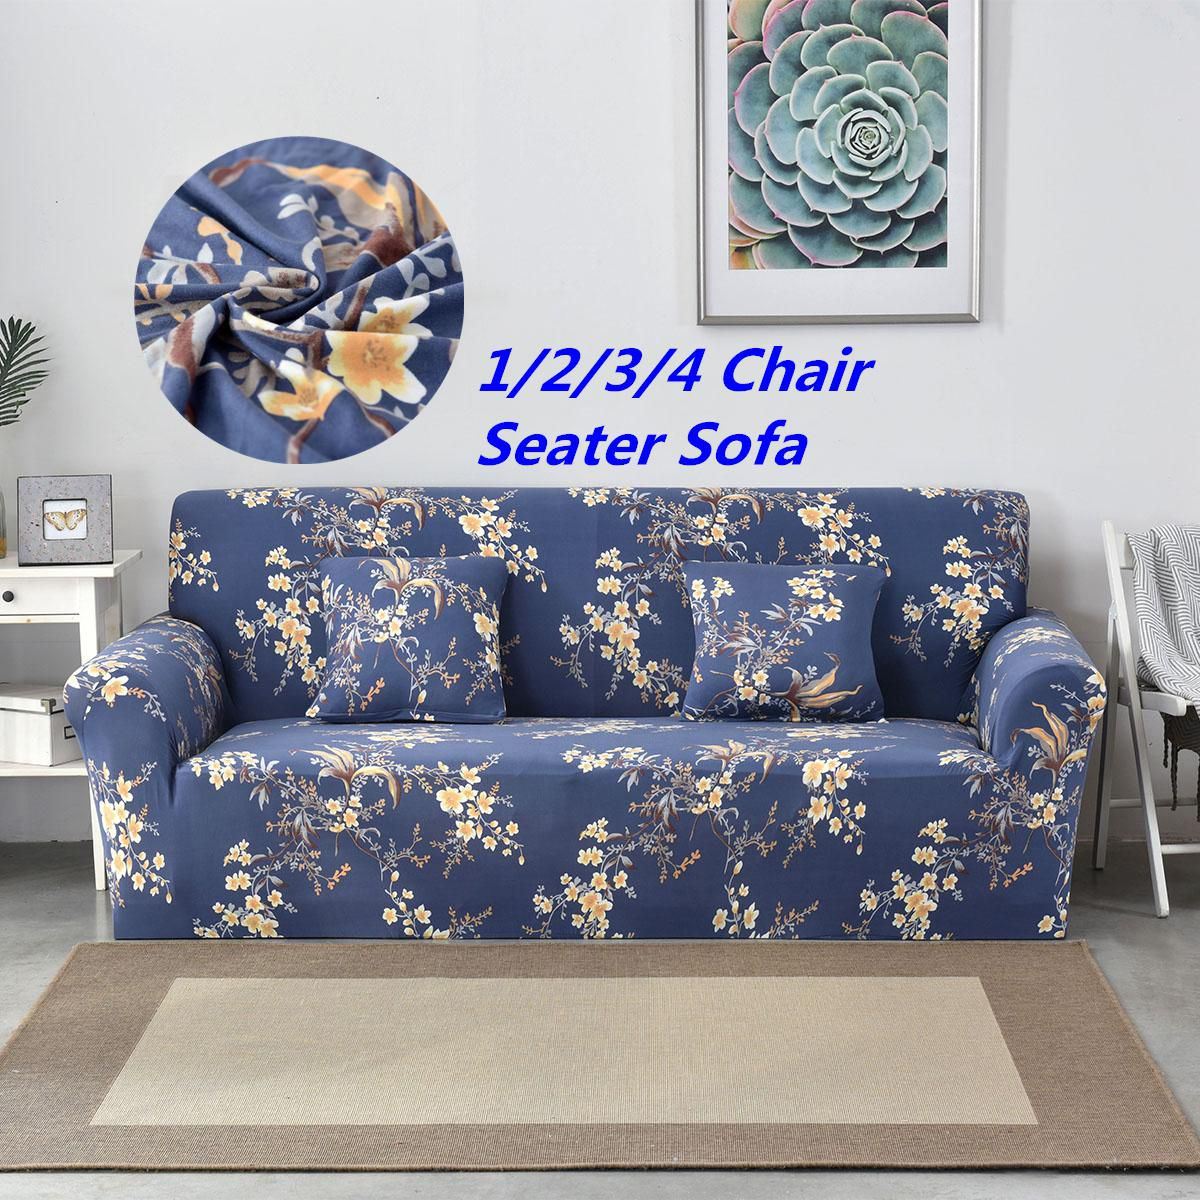 Slipcovers 1 2 3 4 Seater Sofa Cover